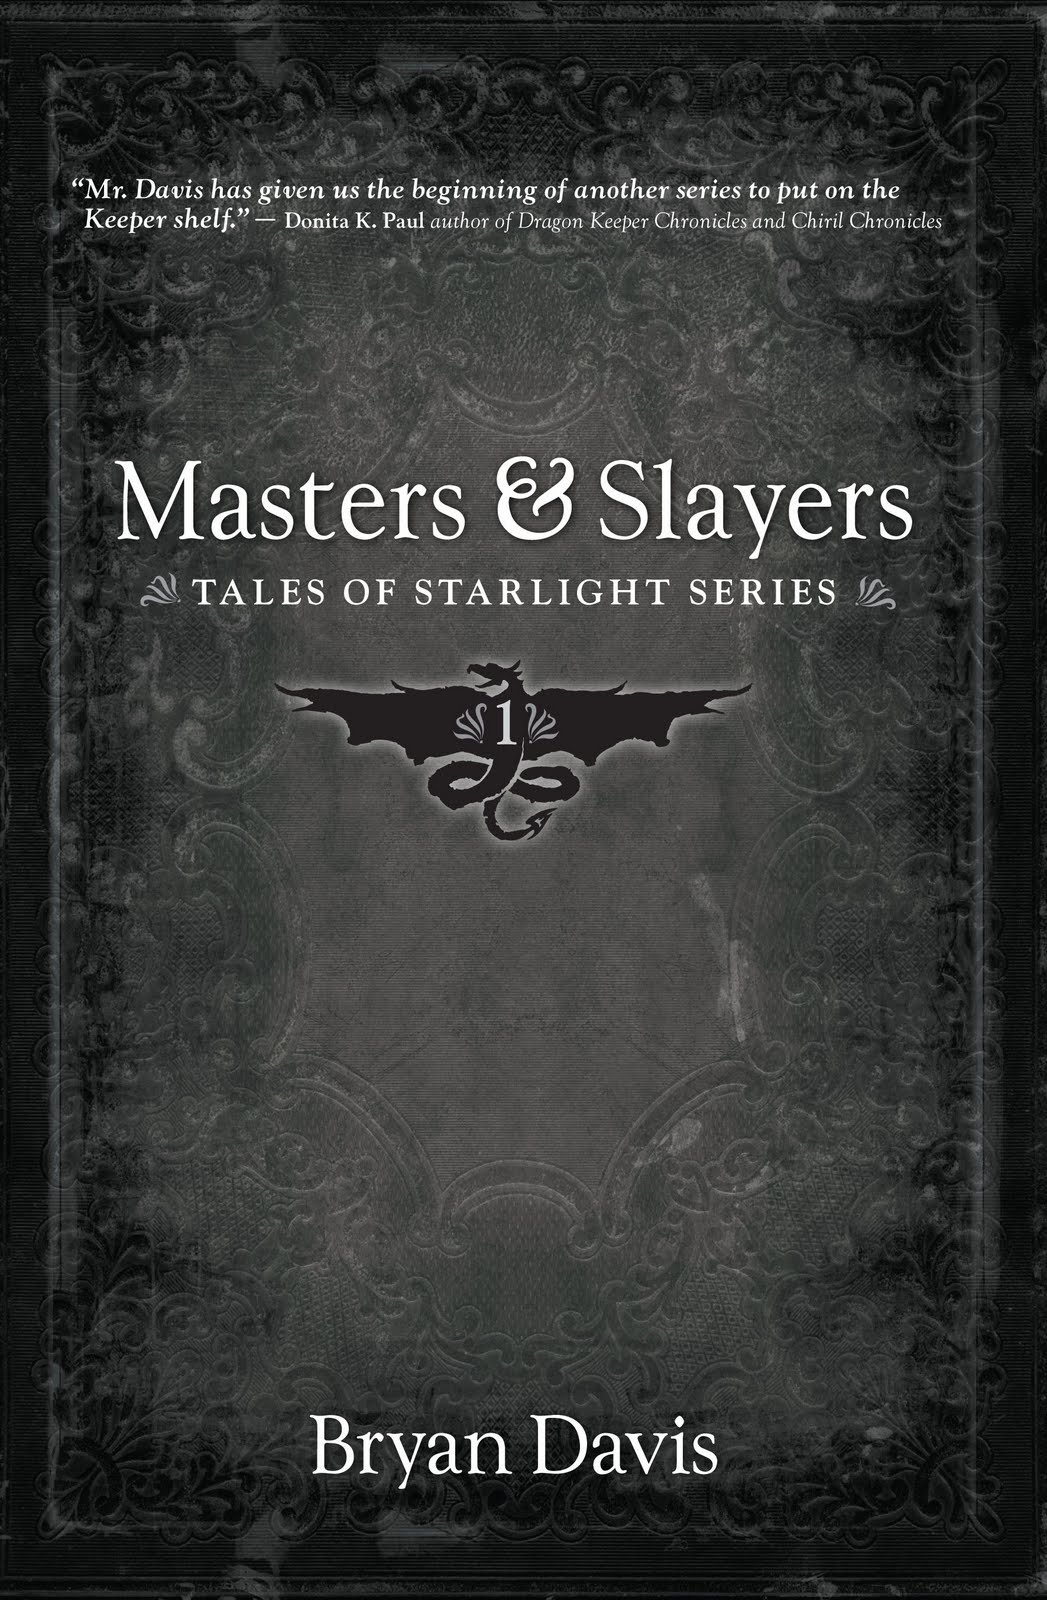 Amg Has Added A Coolness Factor To The Masters & Slayers Cover In The  First Photo You Can See The New Background They Will Add A Varnish Coating  That Will